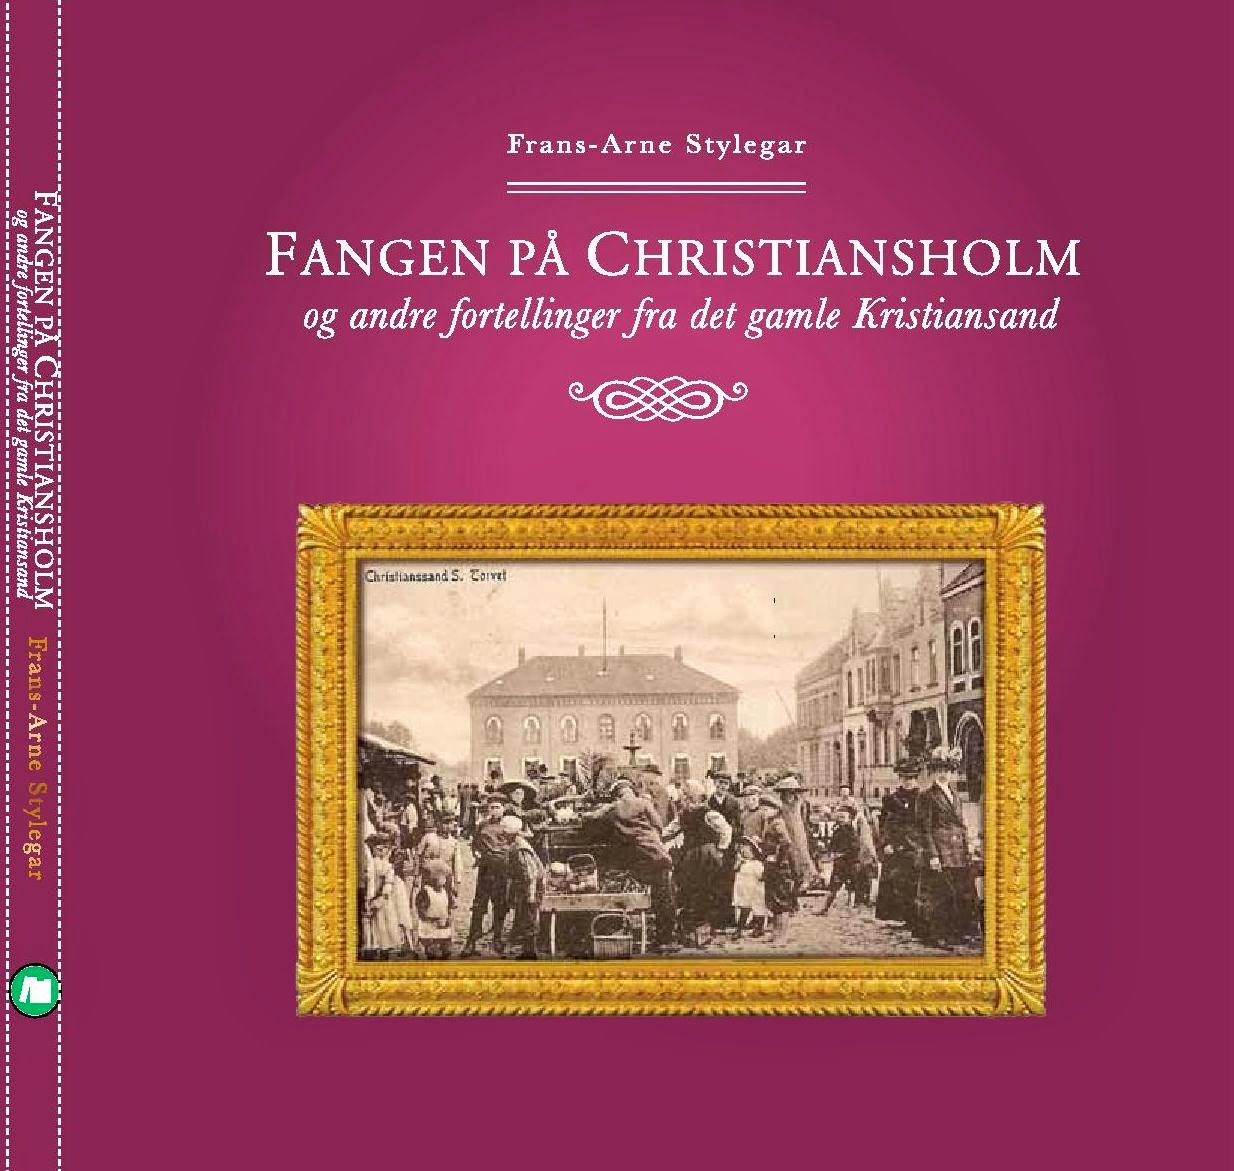 Fangen på Christiansholm (2013)